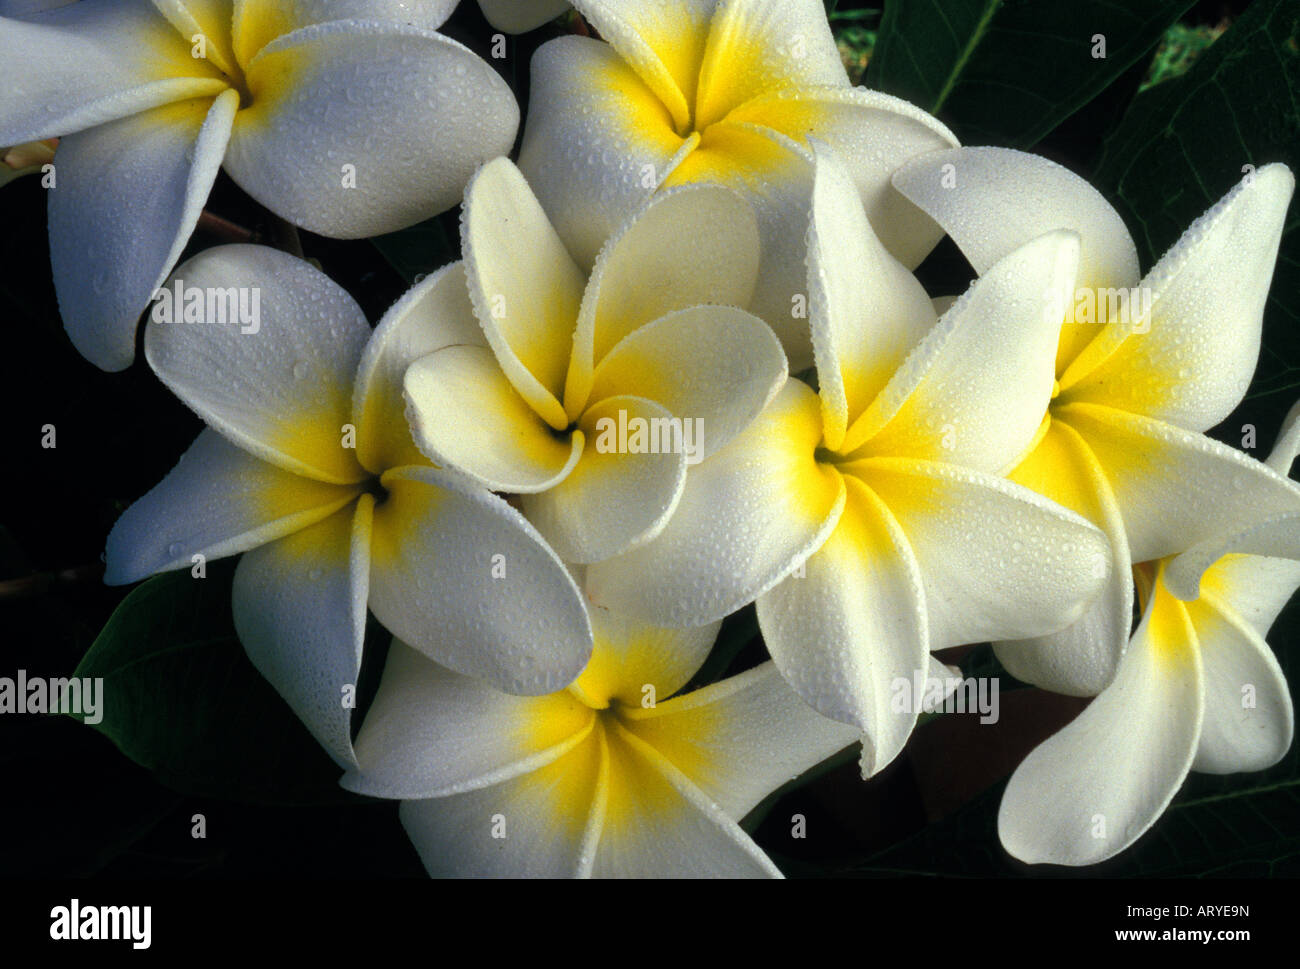 Lovely And Fragrant Plumeria Flowers Also Known As Frangipani Stock